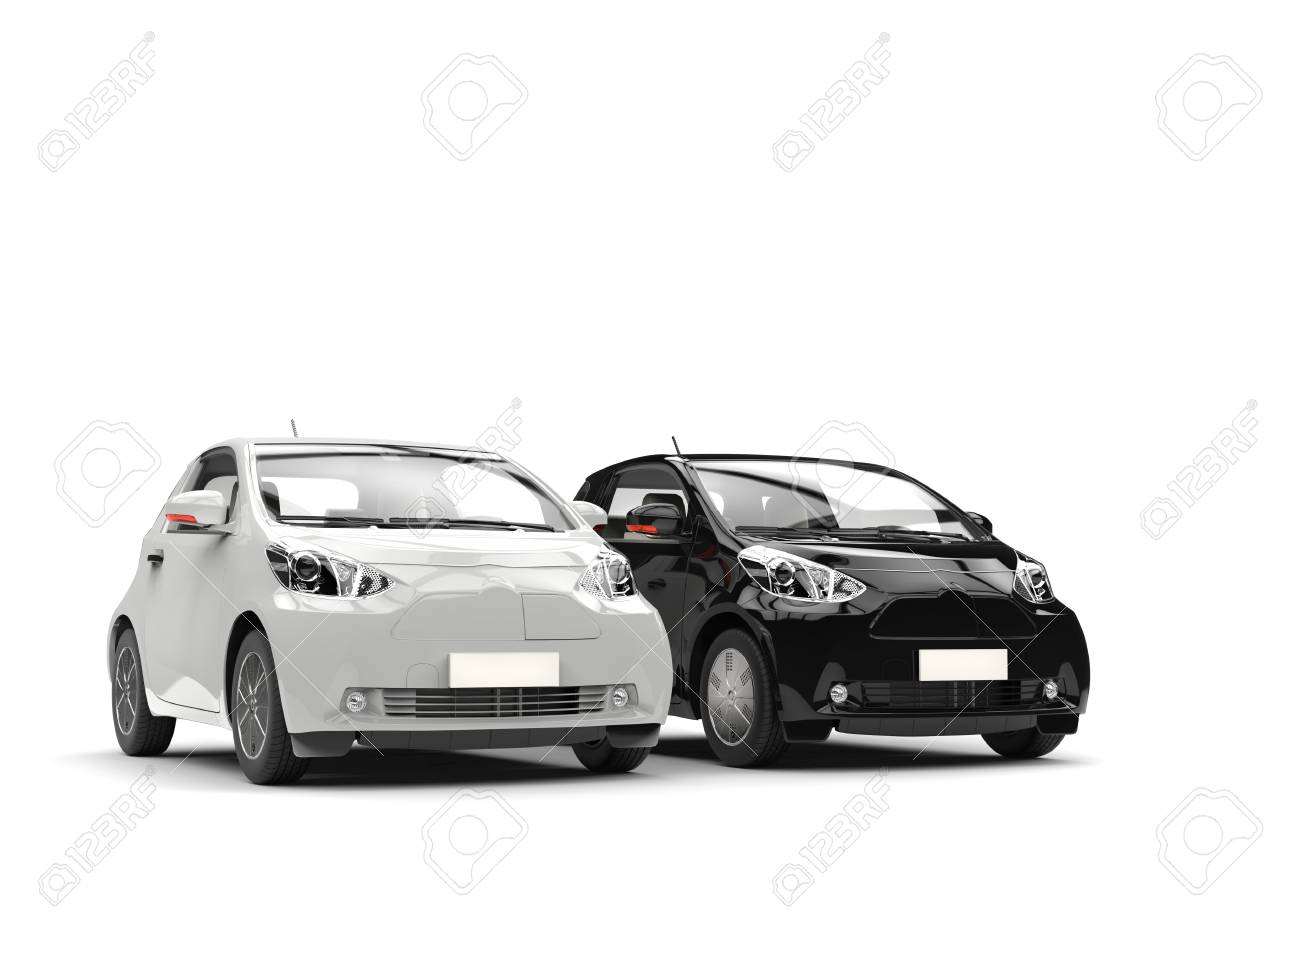 Cool black and white compact urban cars stock photo 73609271